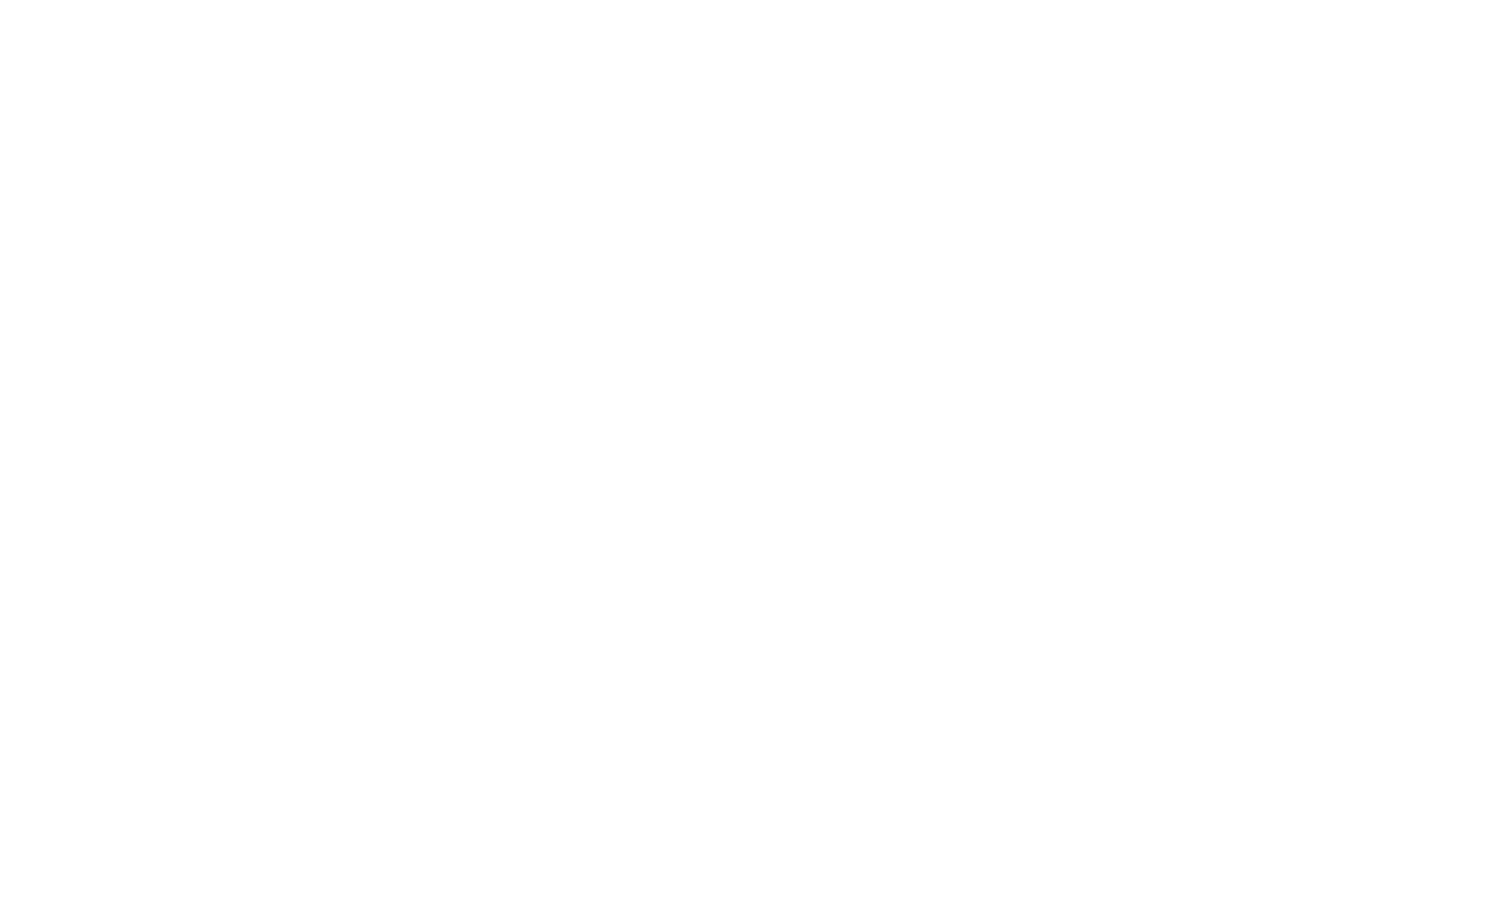 accomplishments matthew fine to make a significant impact in people s lives through honest compassion serial optimism and creative problem solving